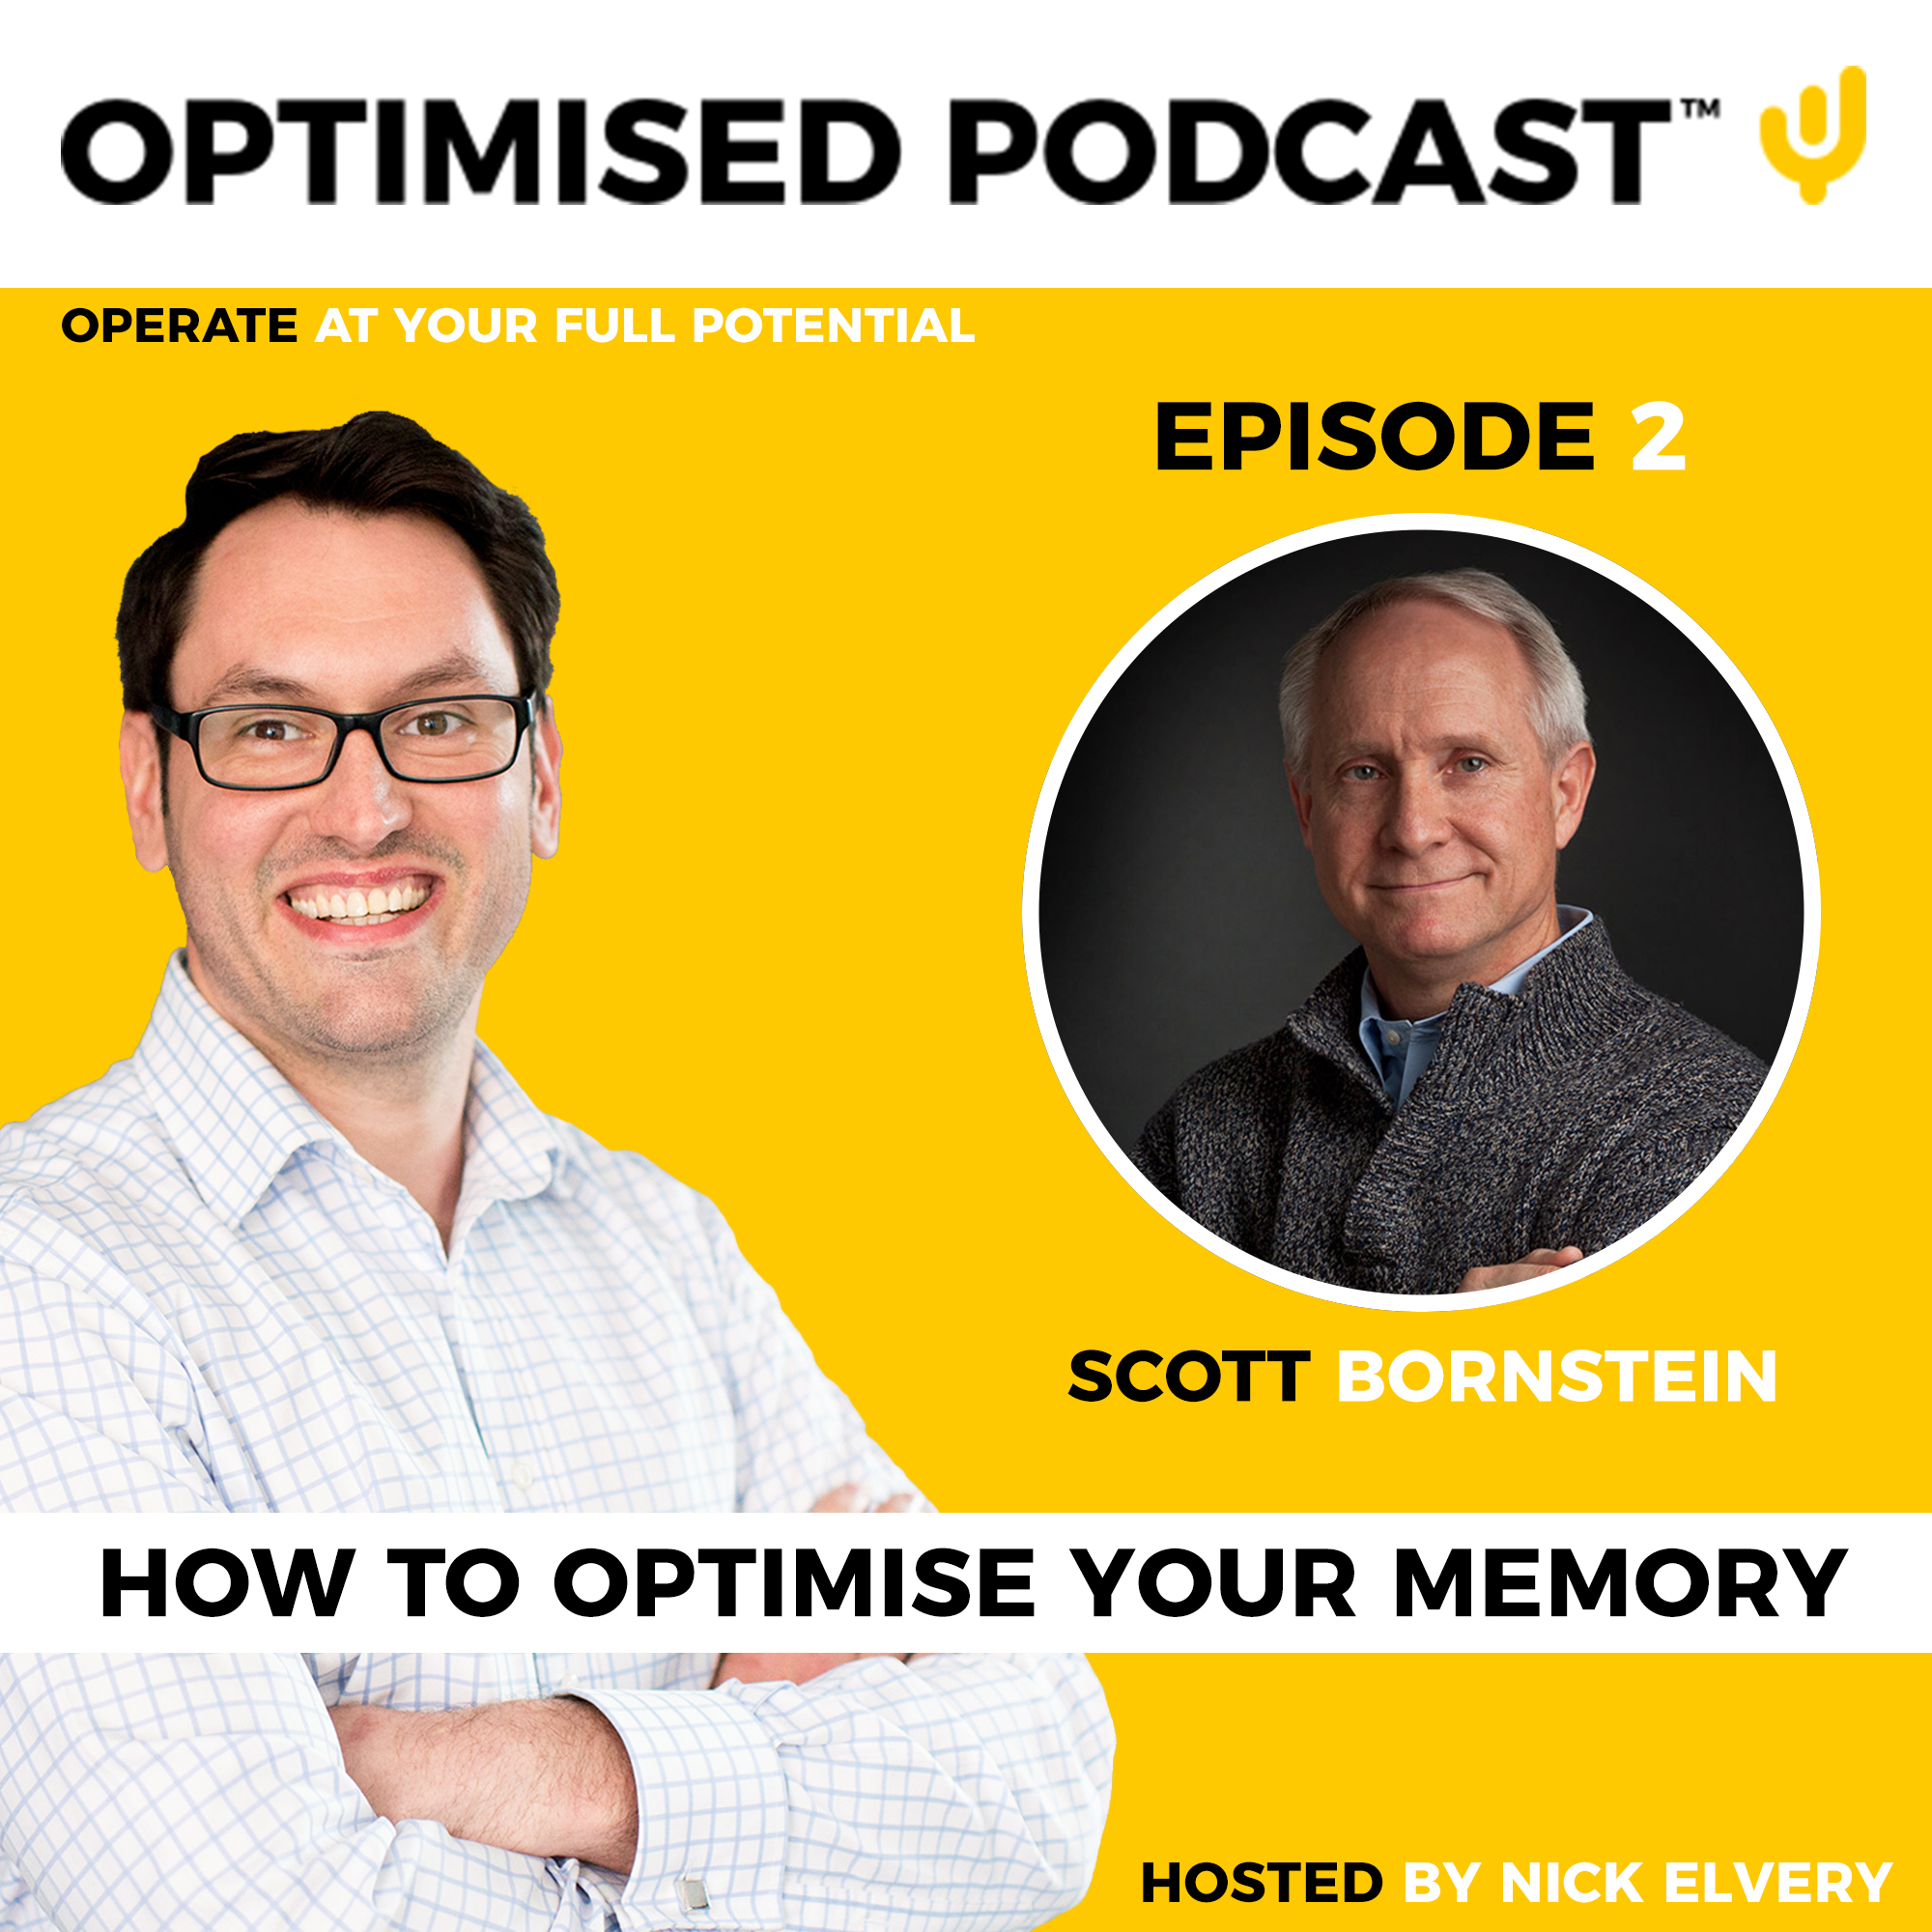 #2 - How to optimise your memory with Scott Bornstein